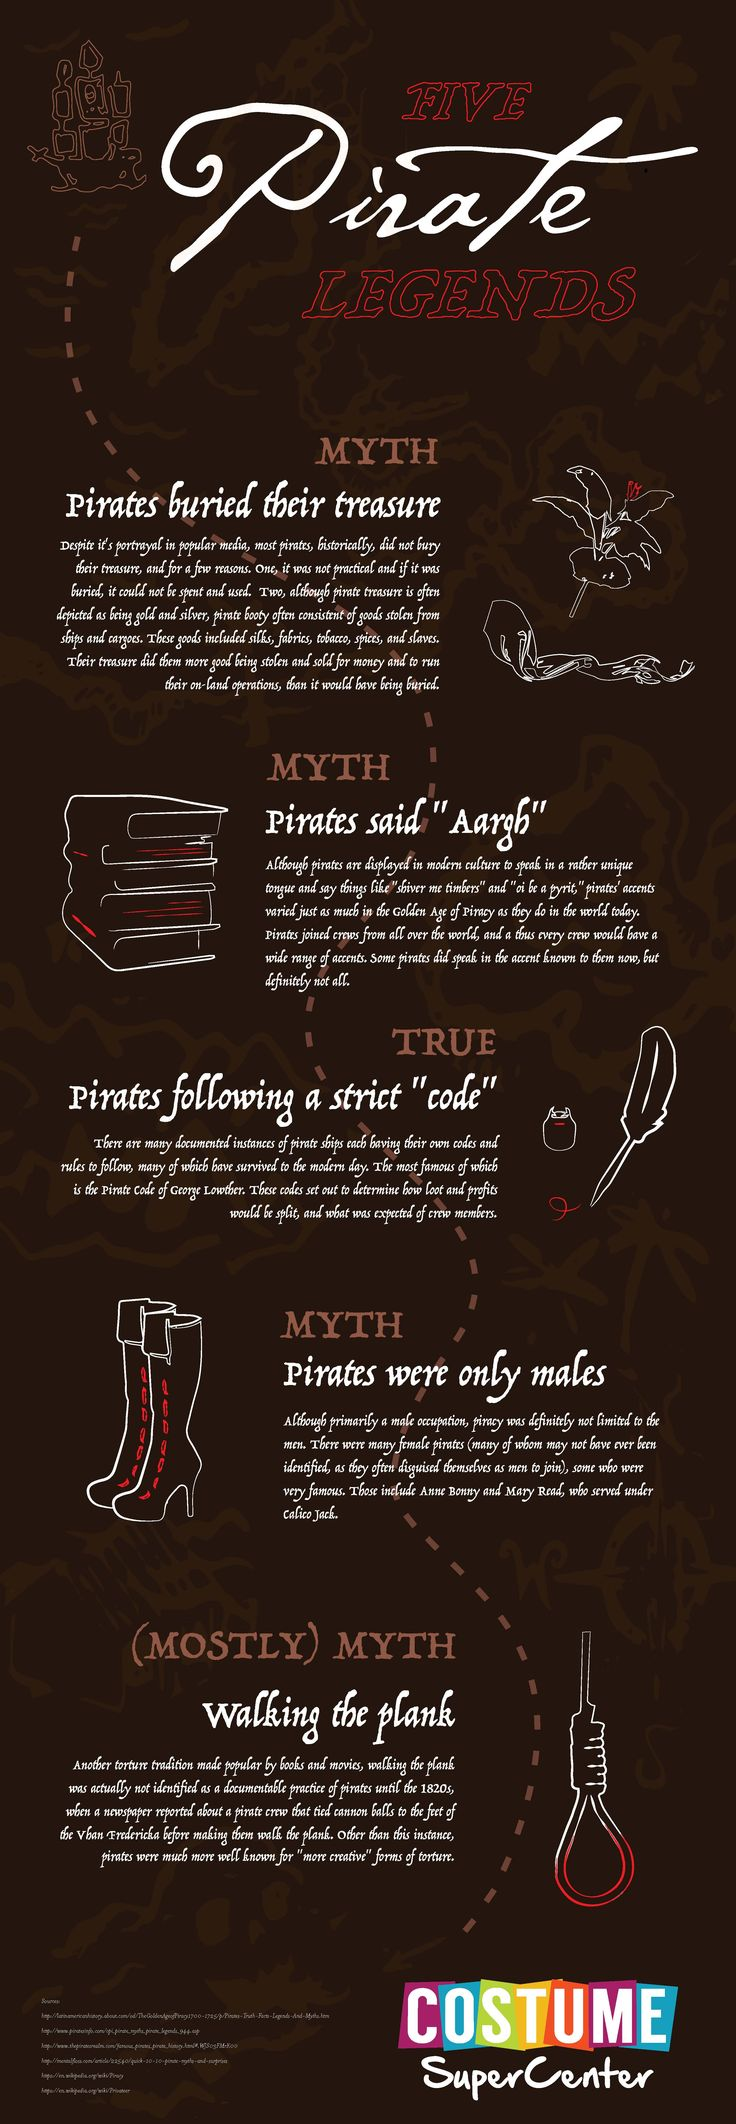 Pirate Day - more myths and truth!